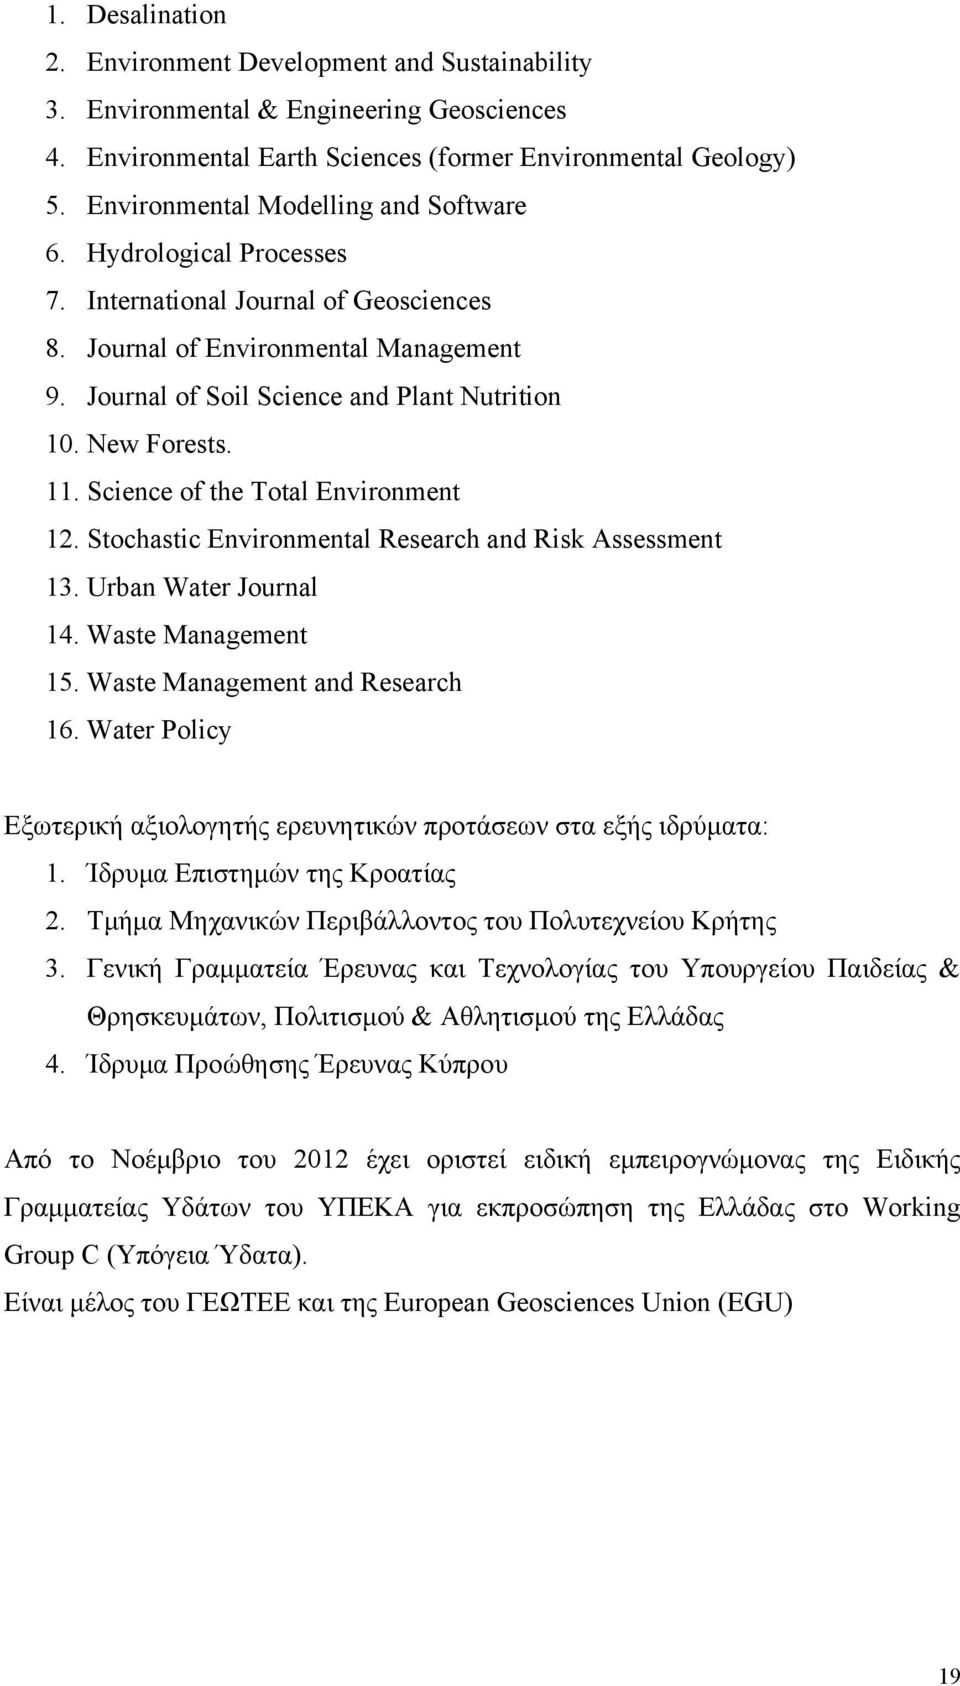 New Forests. 11. Science of the Total Environment 12. Stochastic Environmental Research and Risk Assessment 13. Urban Water Journal 14. Waste Management 15. Waste Management and Research 16.